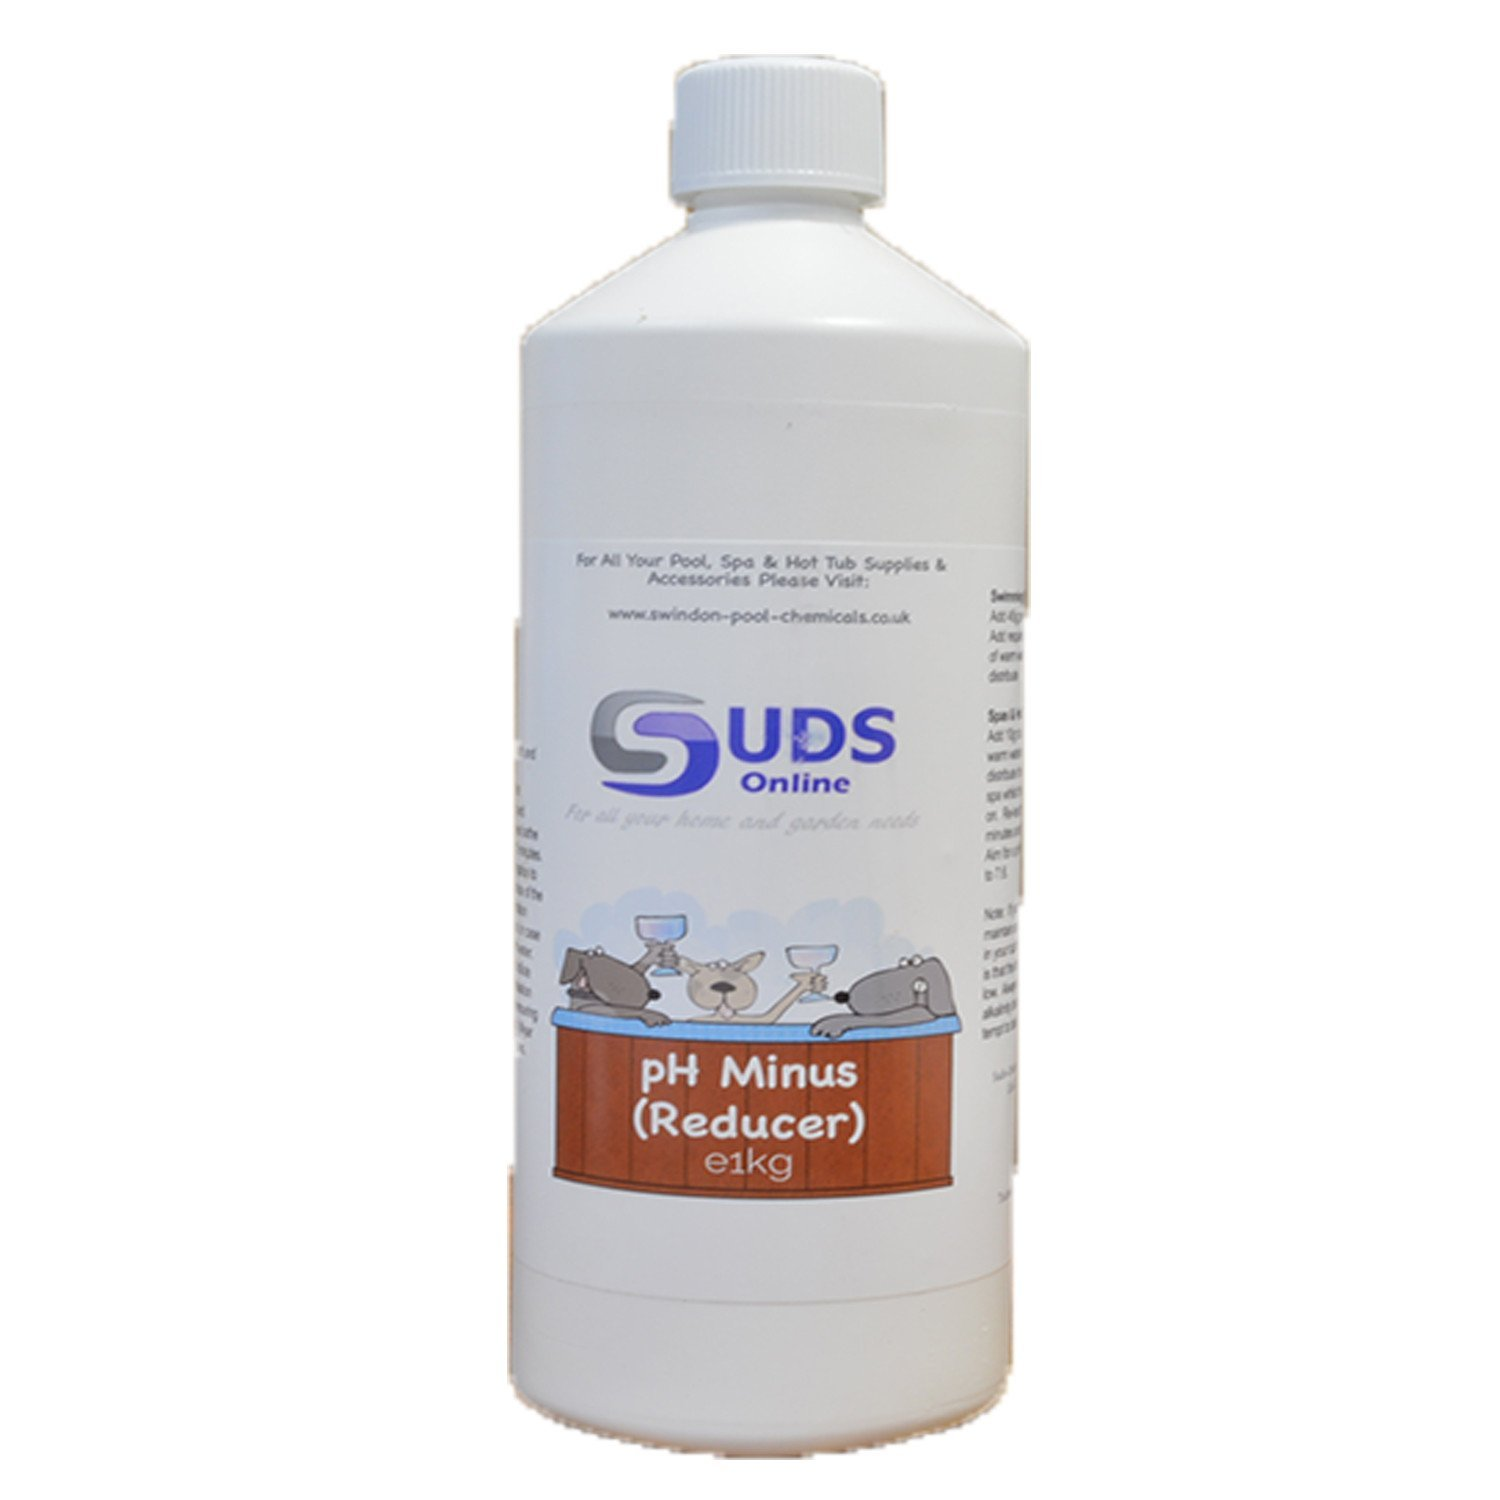 ph minus reducer for swimming pools spa 39 s and hot tubs swindon pool chemicals. Black Bedroom Furniture Sets. Home Design Ideas